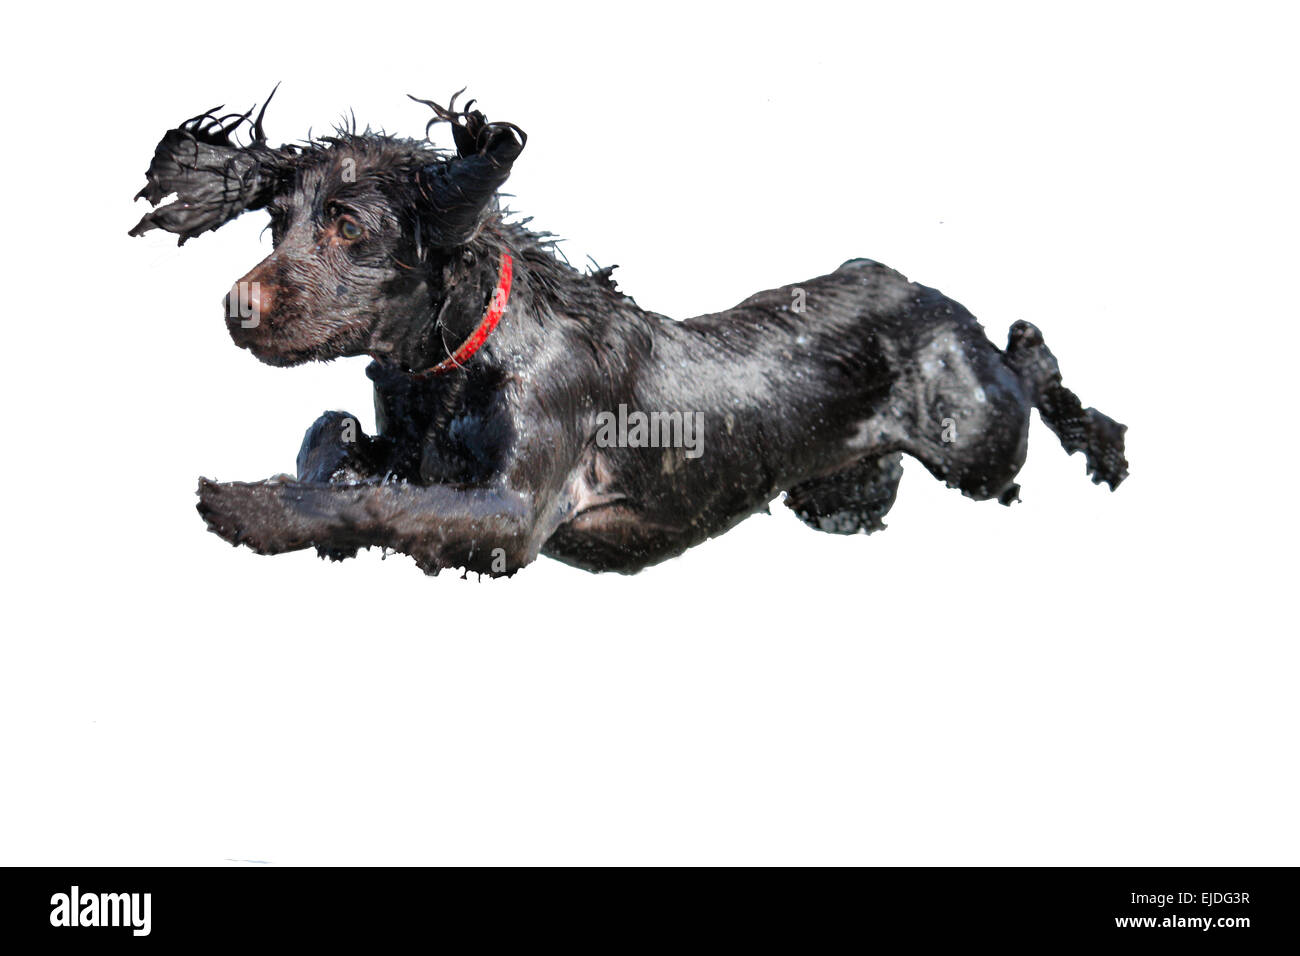 a wet young brown working type cocker spaniel puppy leaping - Stock Image